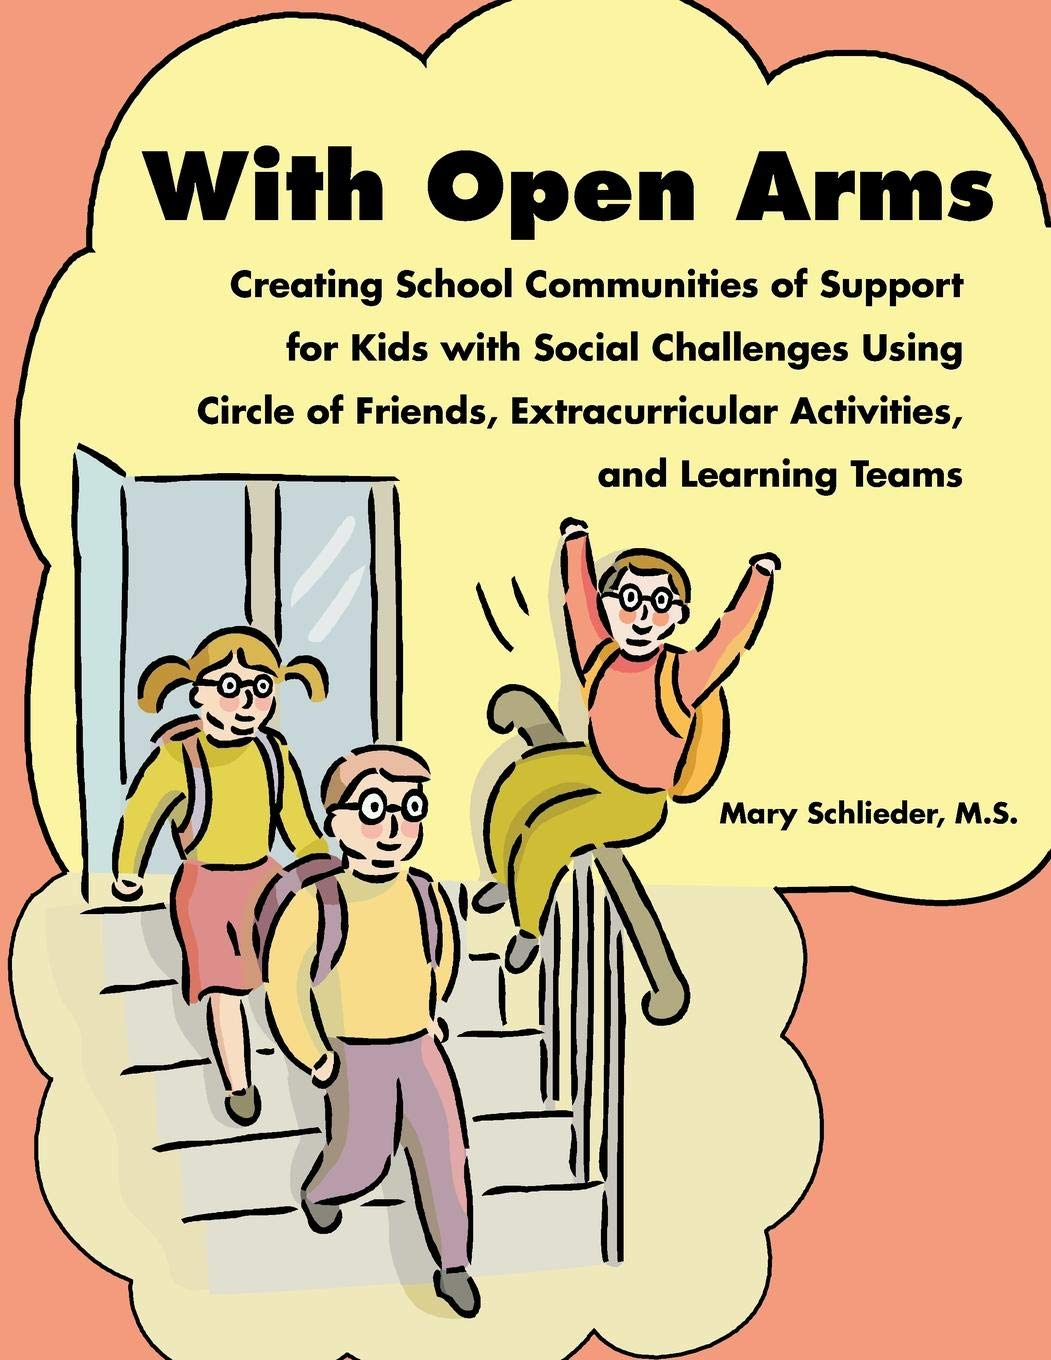 Social Challenges Of Kids With Learning >> With Open Arms Creating School Communities Of Support For Kids With